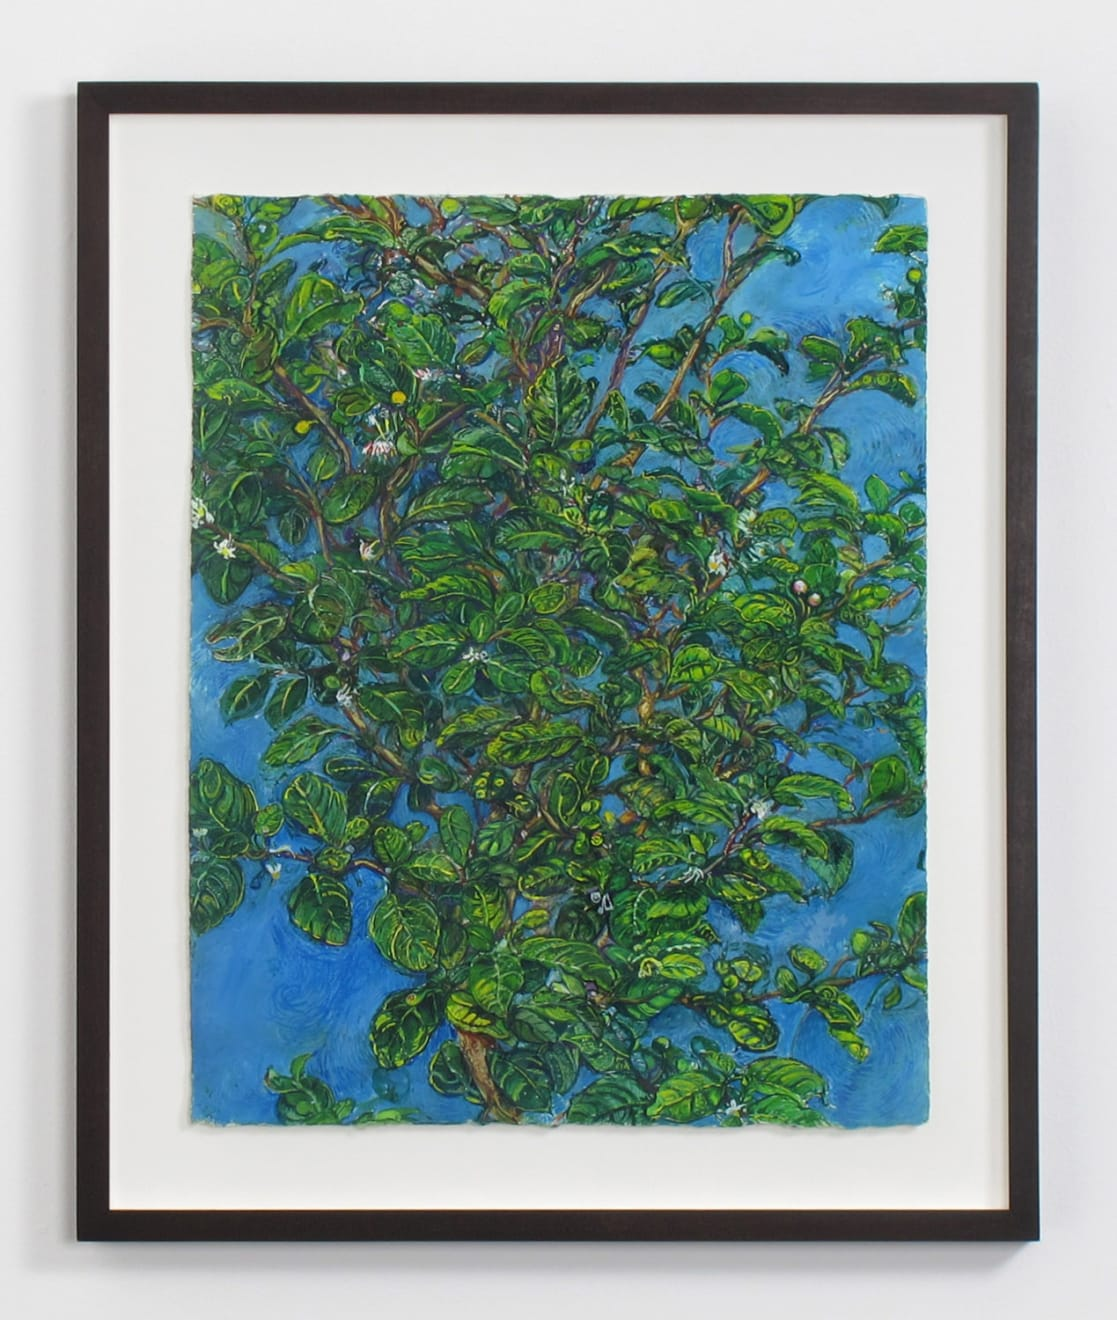 Beth Secor Young Hawthorne Late Spring, 2013 ink, gouache, and pencil on paper 20 x 16 in (50.8 x 40.6 cm) BS 235 $3,750